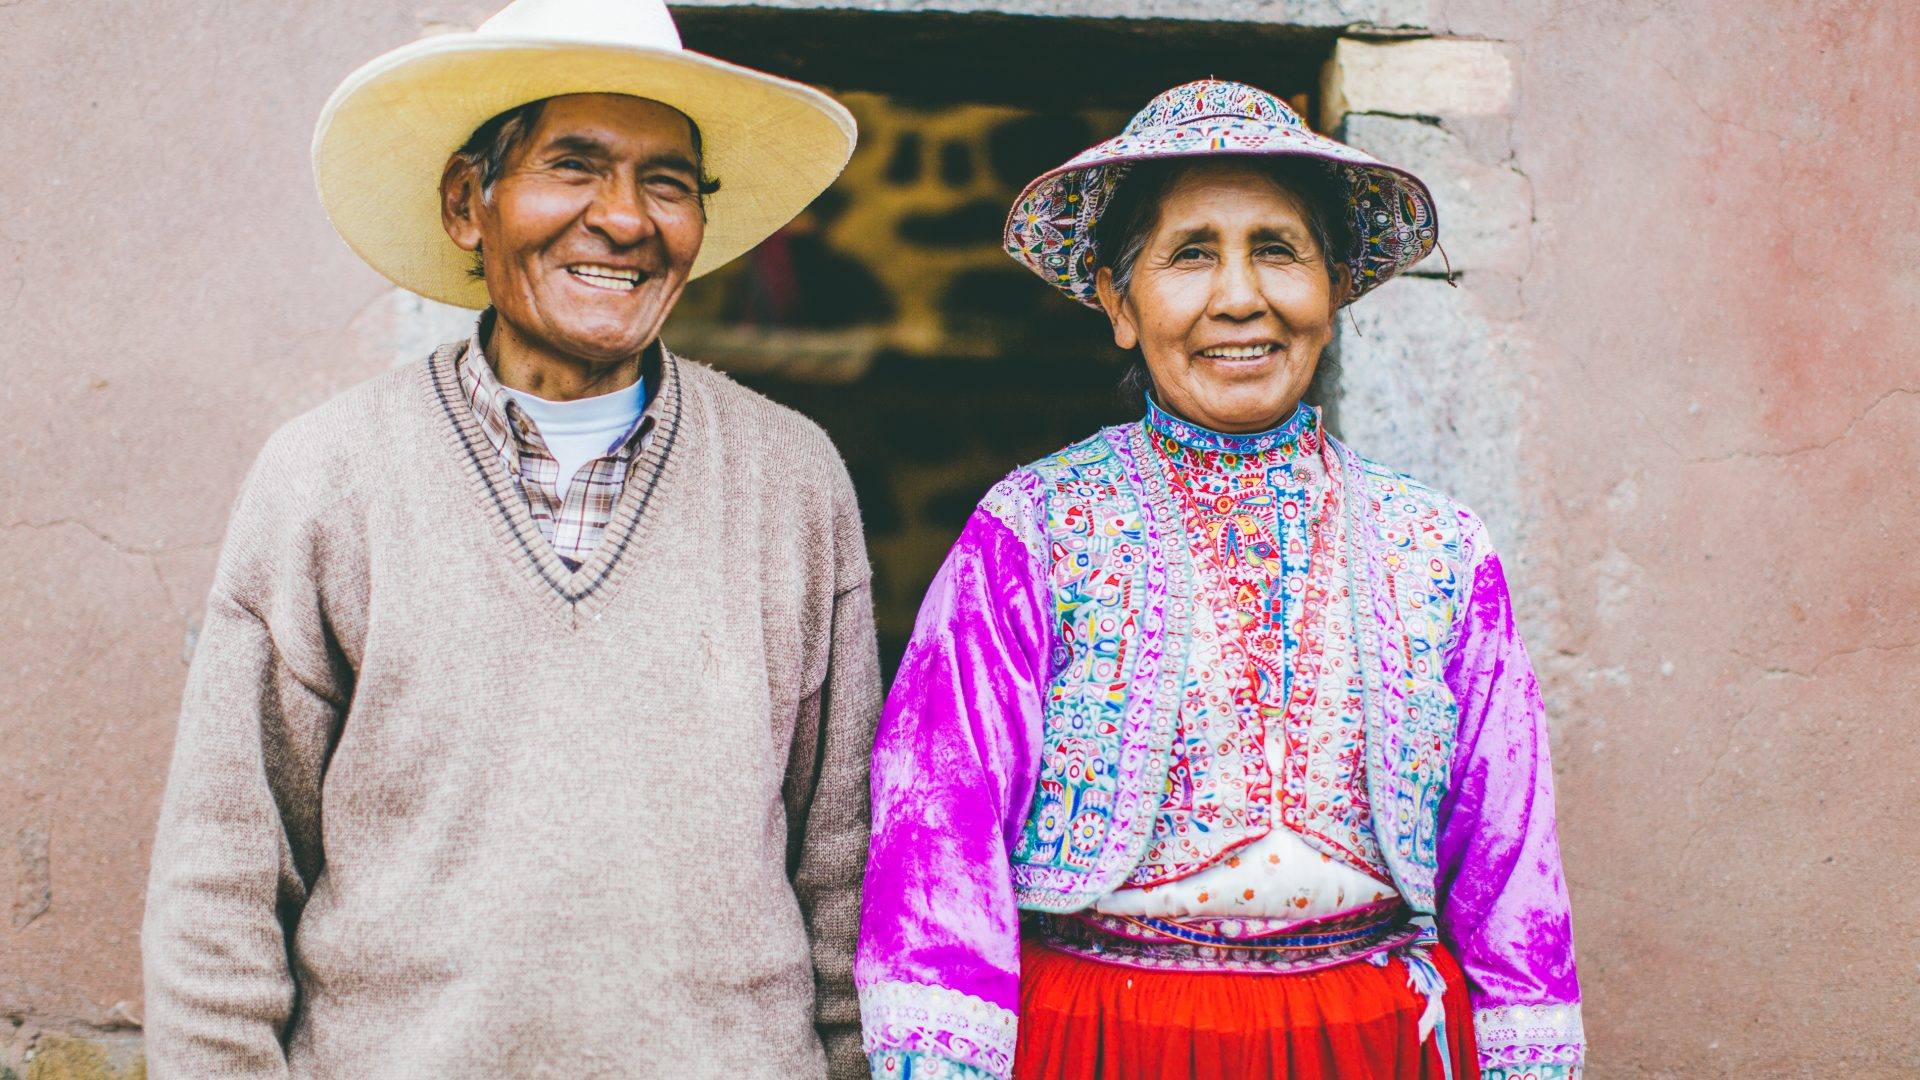 Señor Pedro and Señora Julia, dressed in bright colors and wide brimmed hats, greeting us with the most inviting smiles.